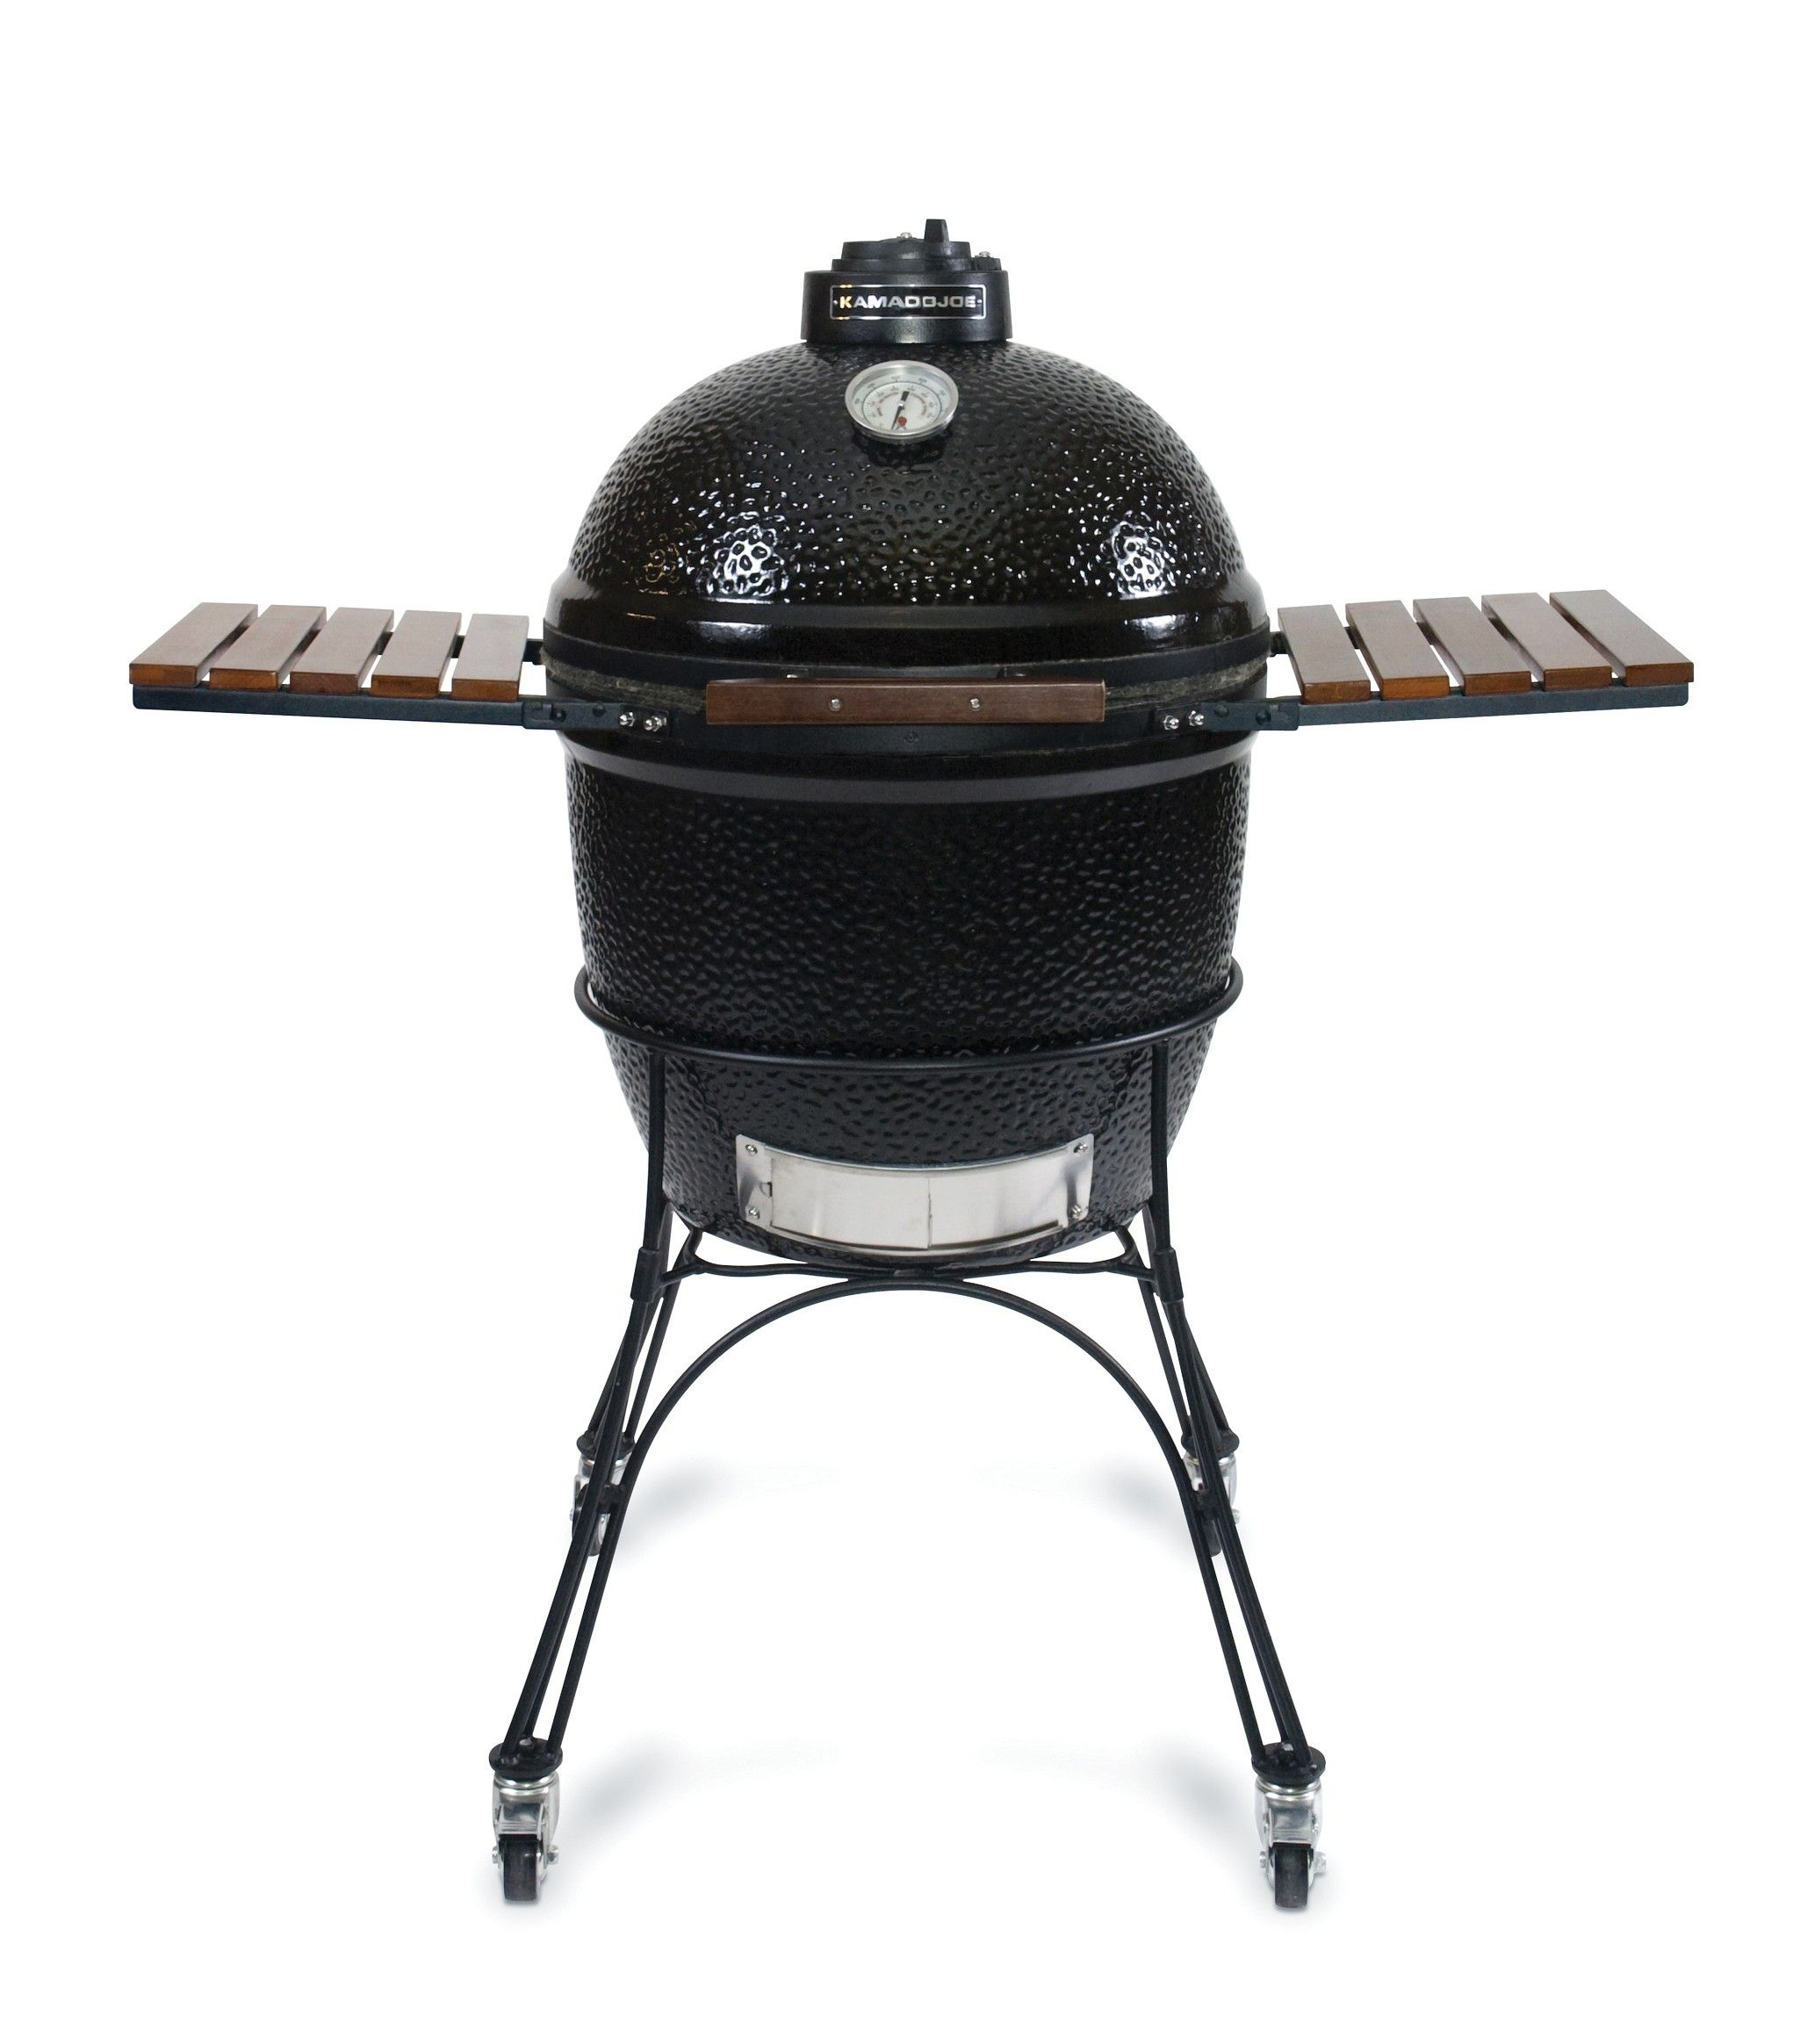 Black Do Joe Clic With Cart And Side Shelves Like Thomas Lumber On Facebook Receive A 5 All Grills Grill Accessories Through